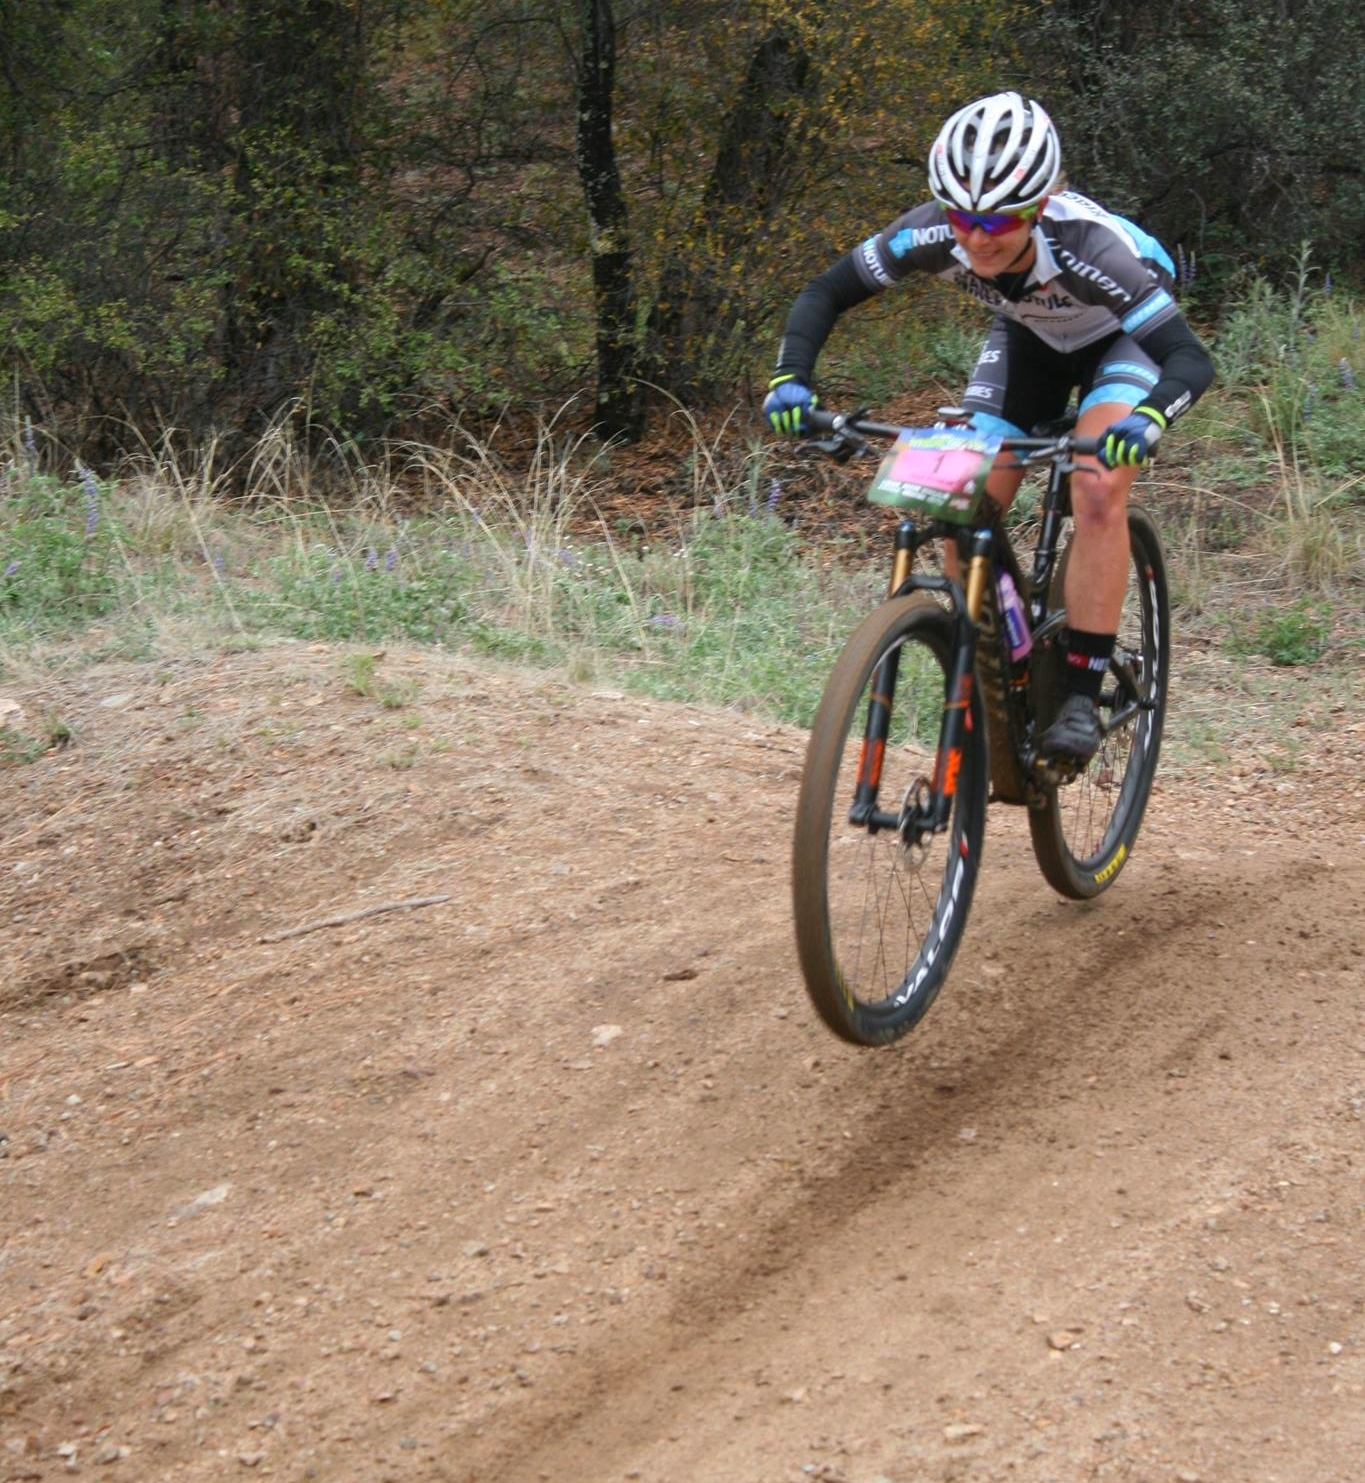 All smiles at the bottom of Trail 260. Thanks to Alex & Drew Shumaker for cheering and the photo!